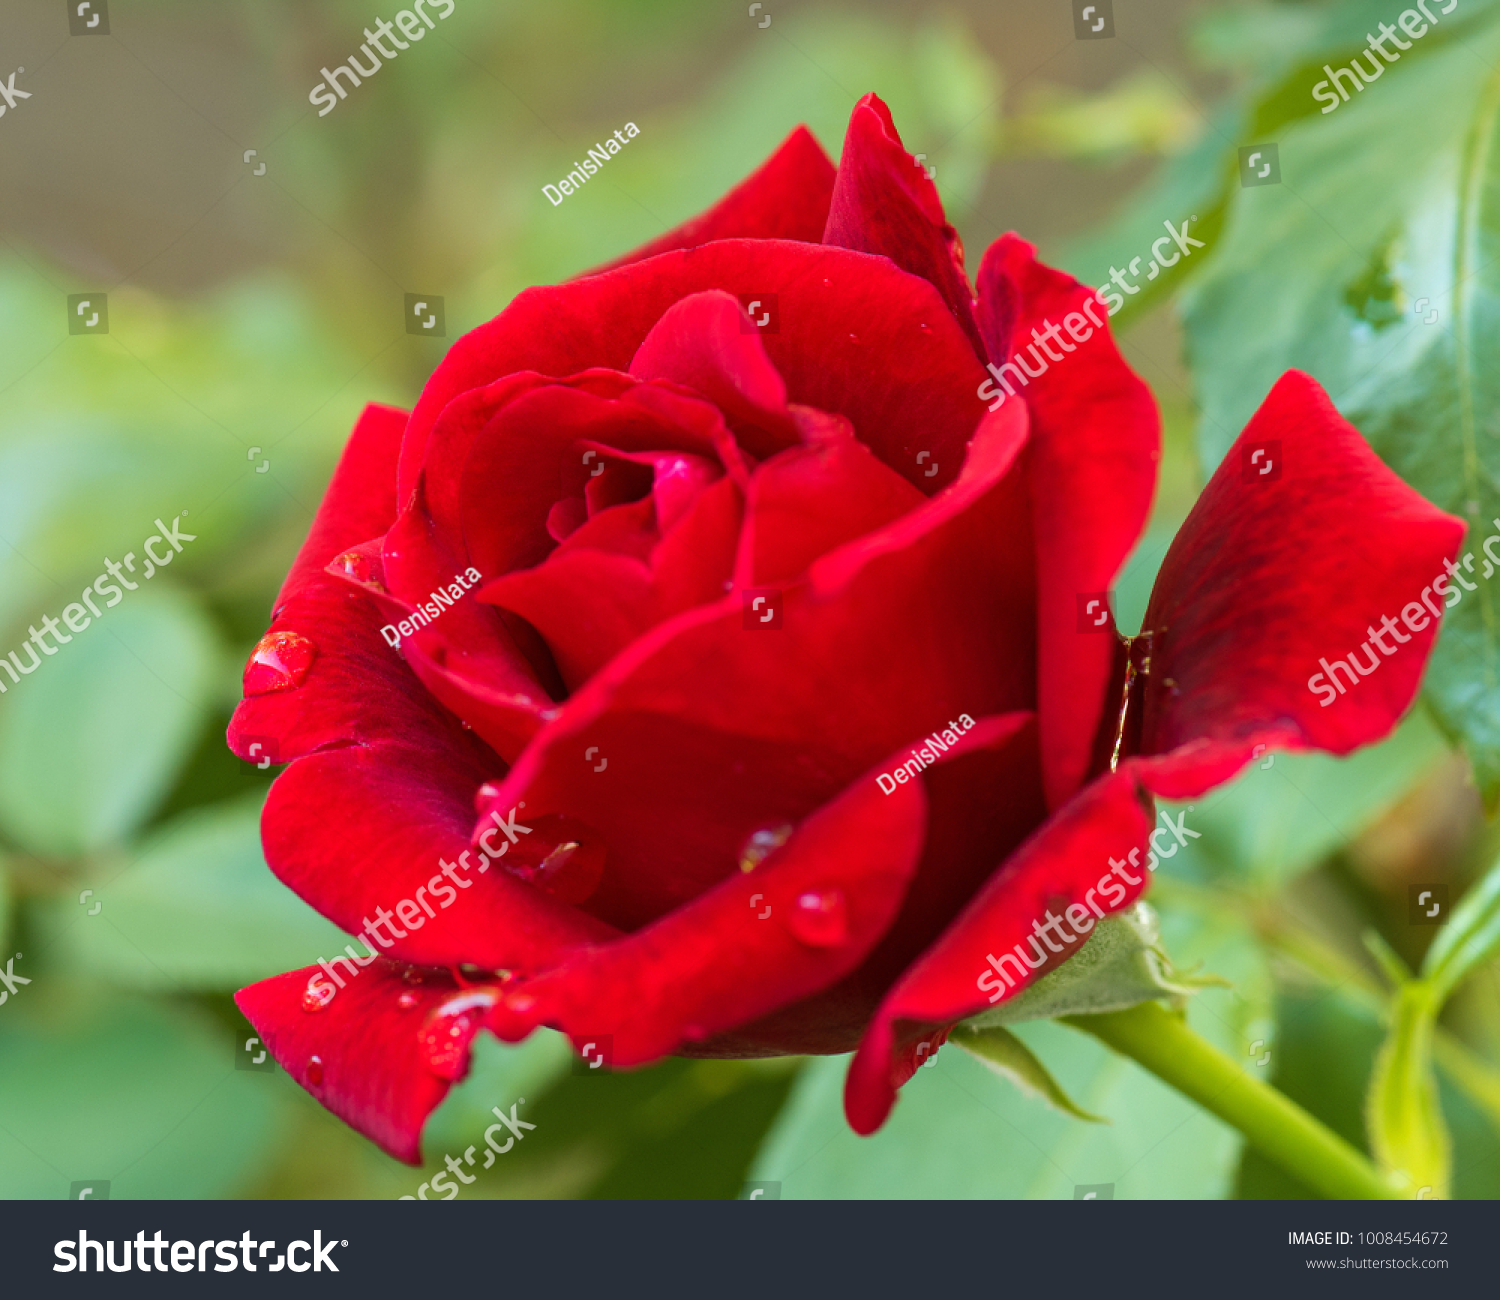 Beautiful Red Roses In The Garden With Rain Drops Of Water On The